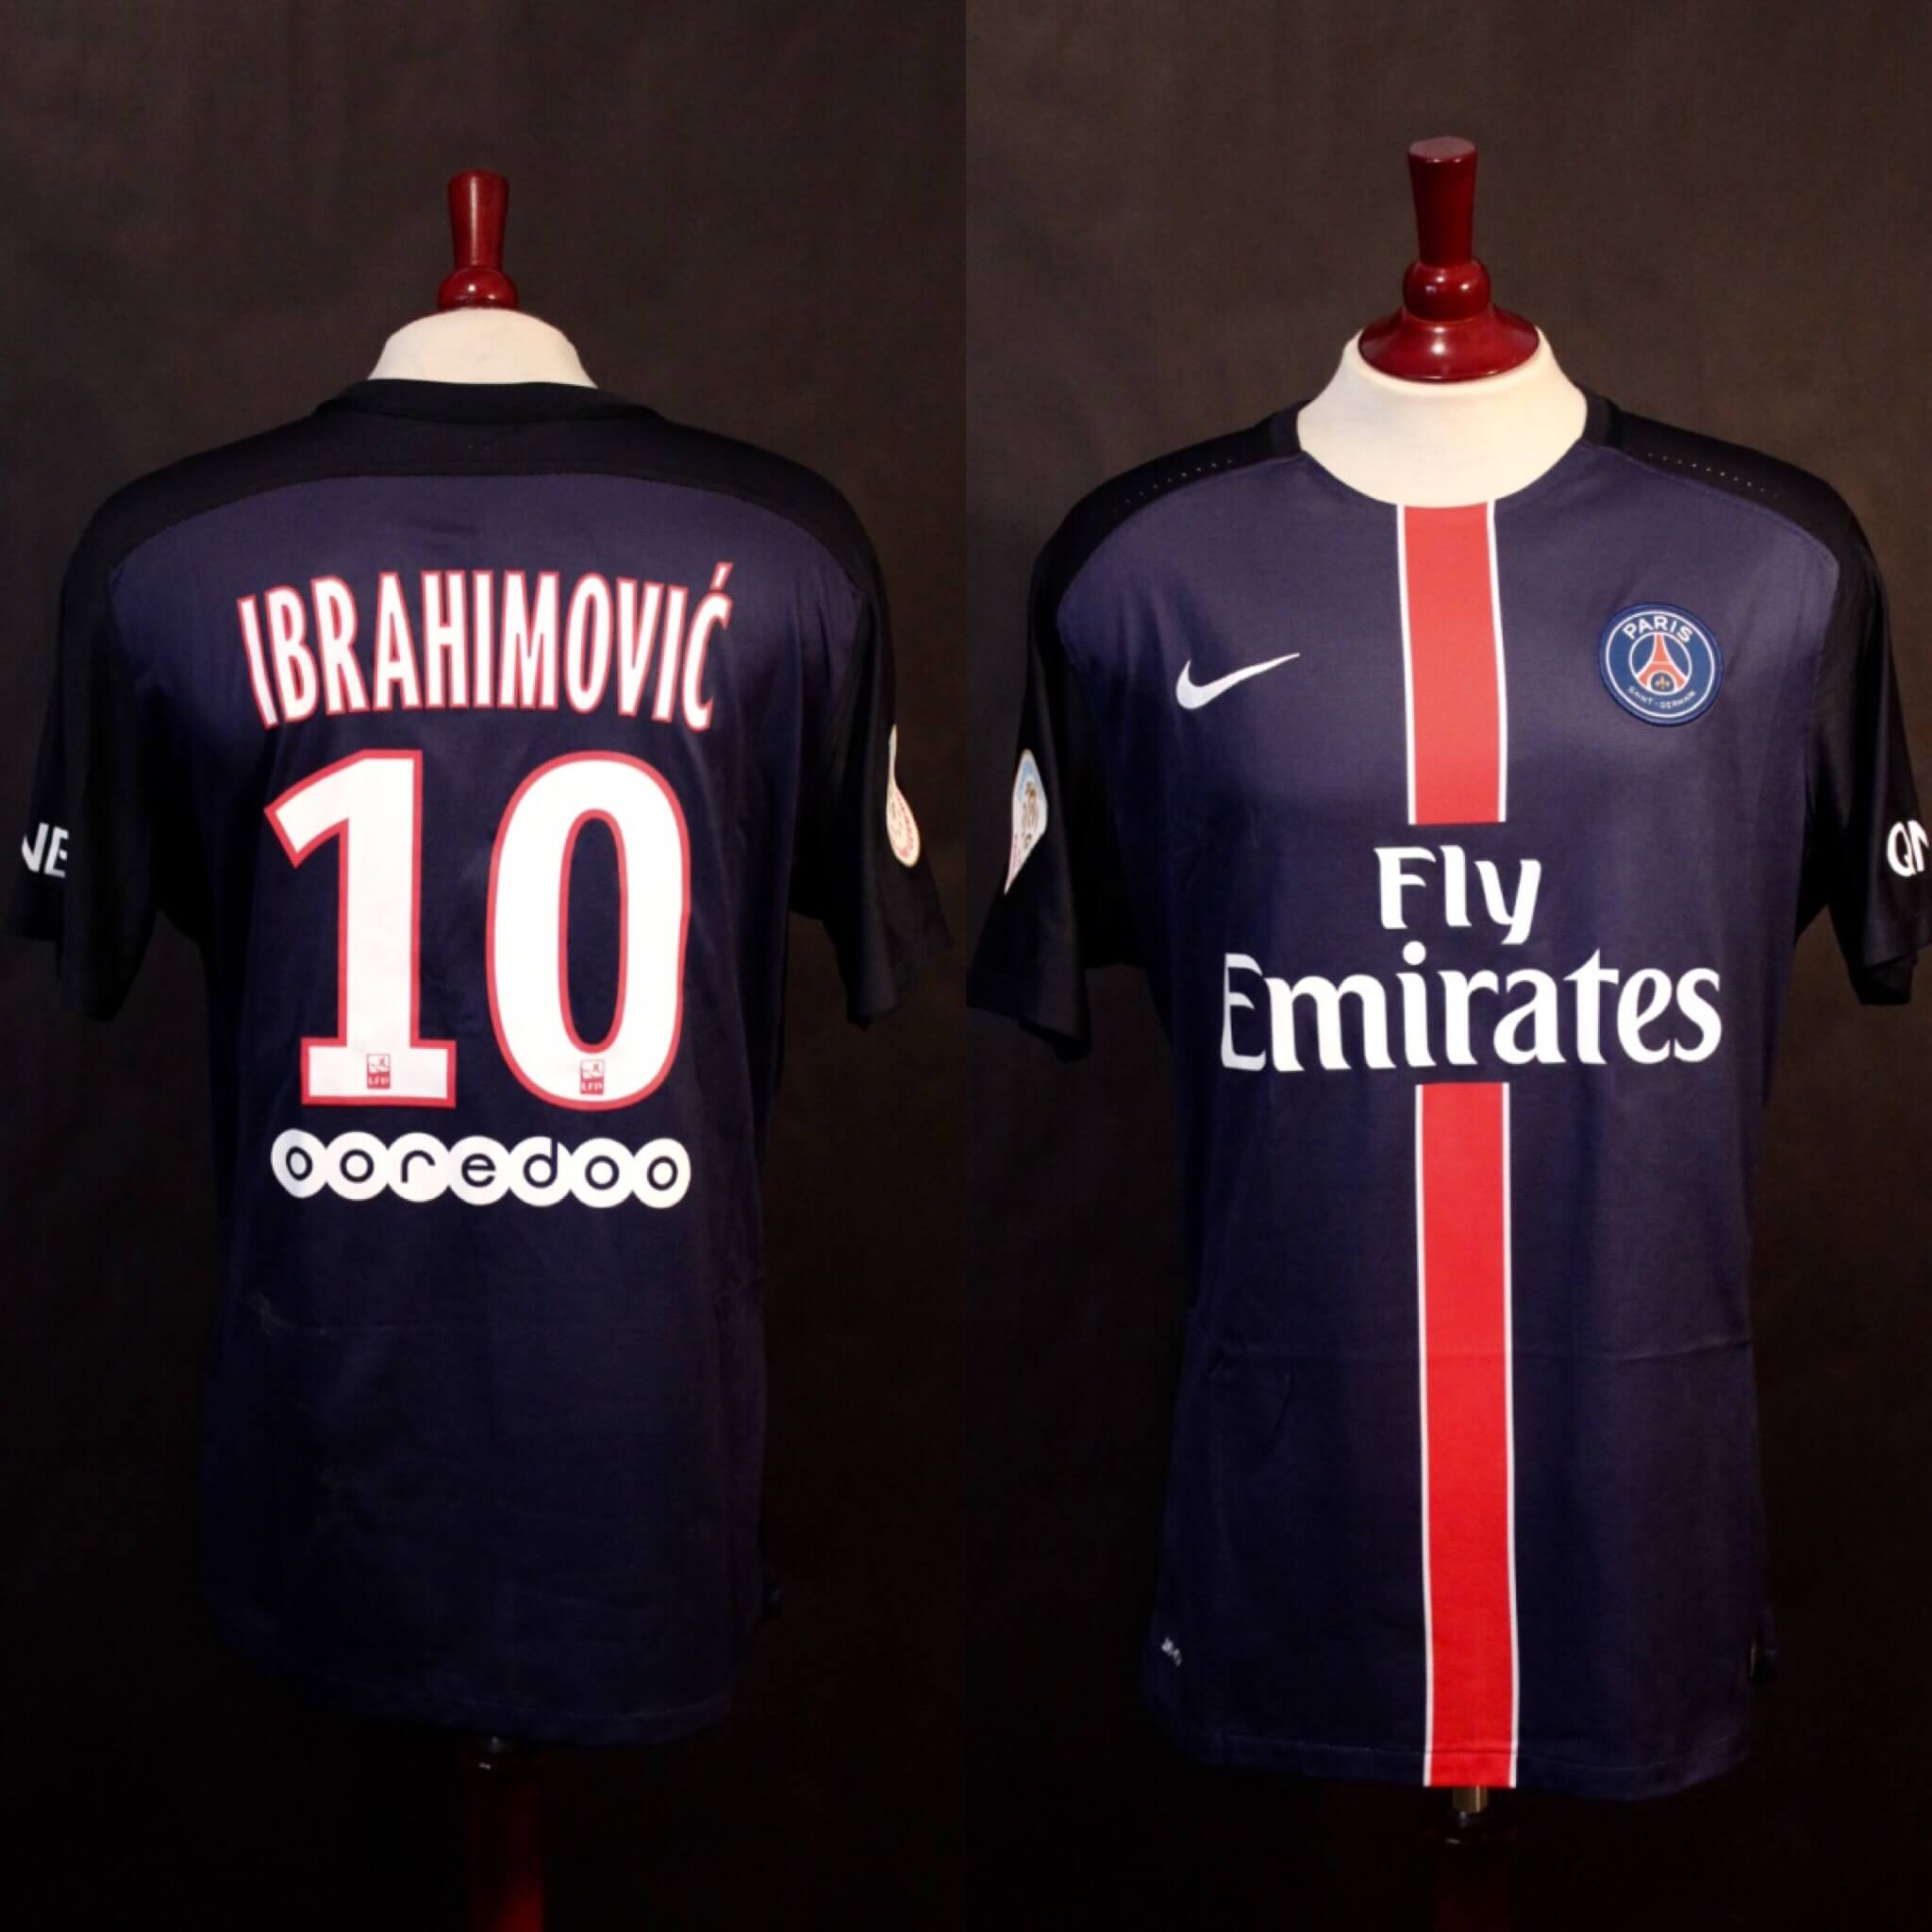 the best attitude d653a 79031 A Zlatan Ibrahimovic Game-Used & Unwashed #10 Paris Saint Germain Home  Shirt. 1/31/2016 PSG v. St Etienne (2-0).